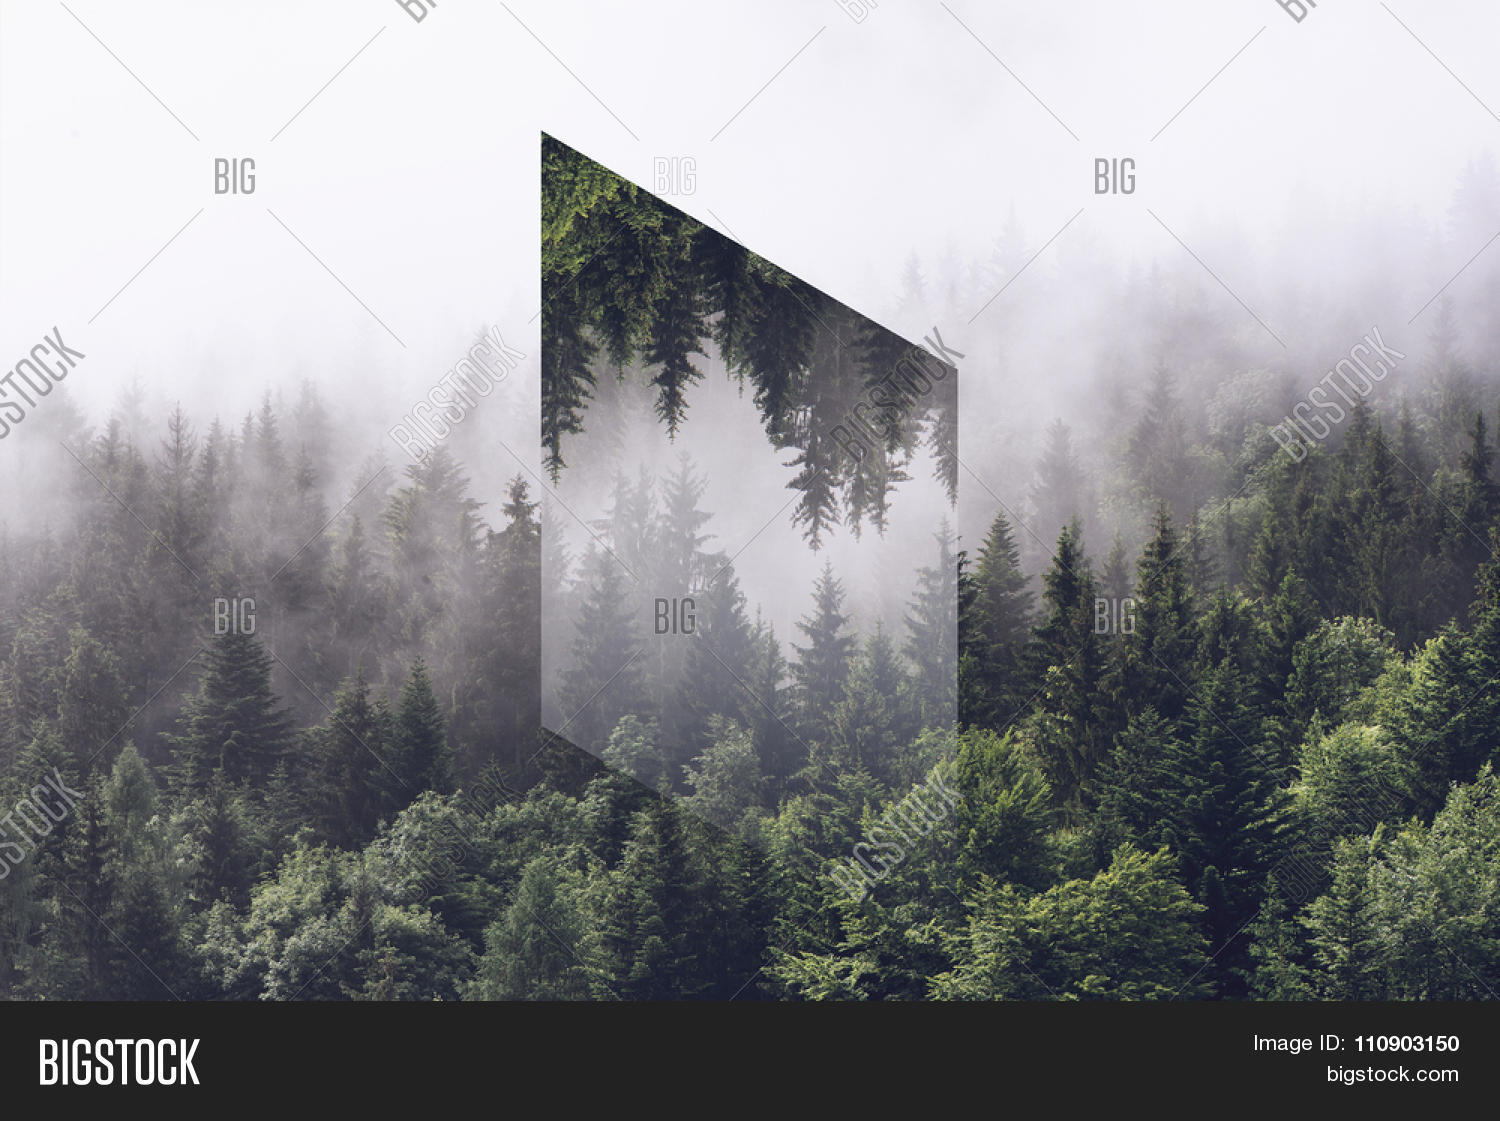 atmospheric scenic view of alpine evergreen trees shrouded in